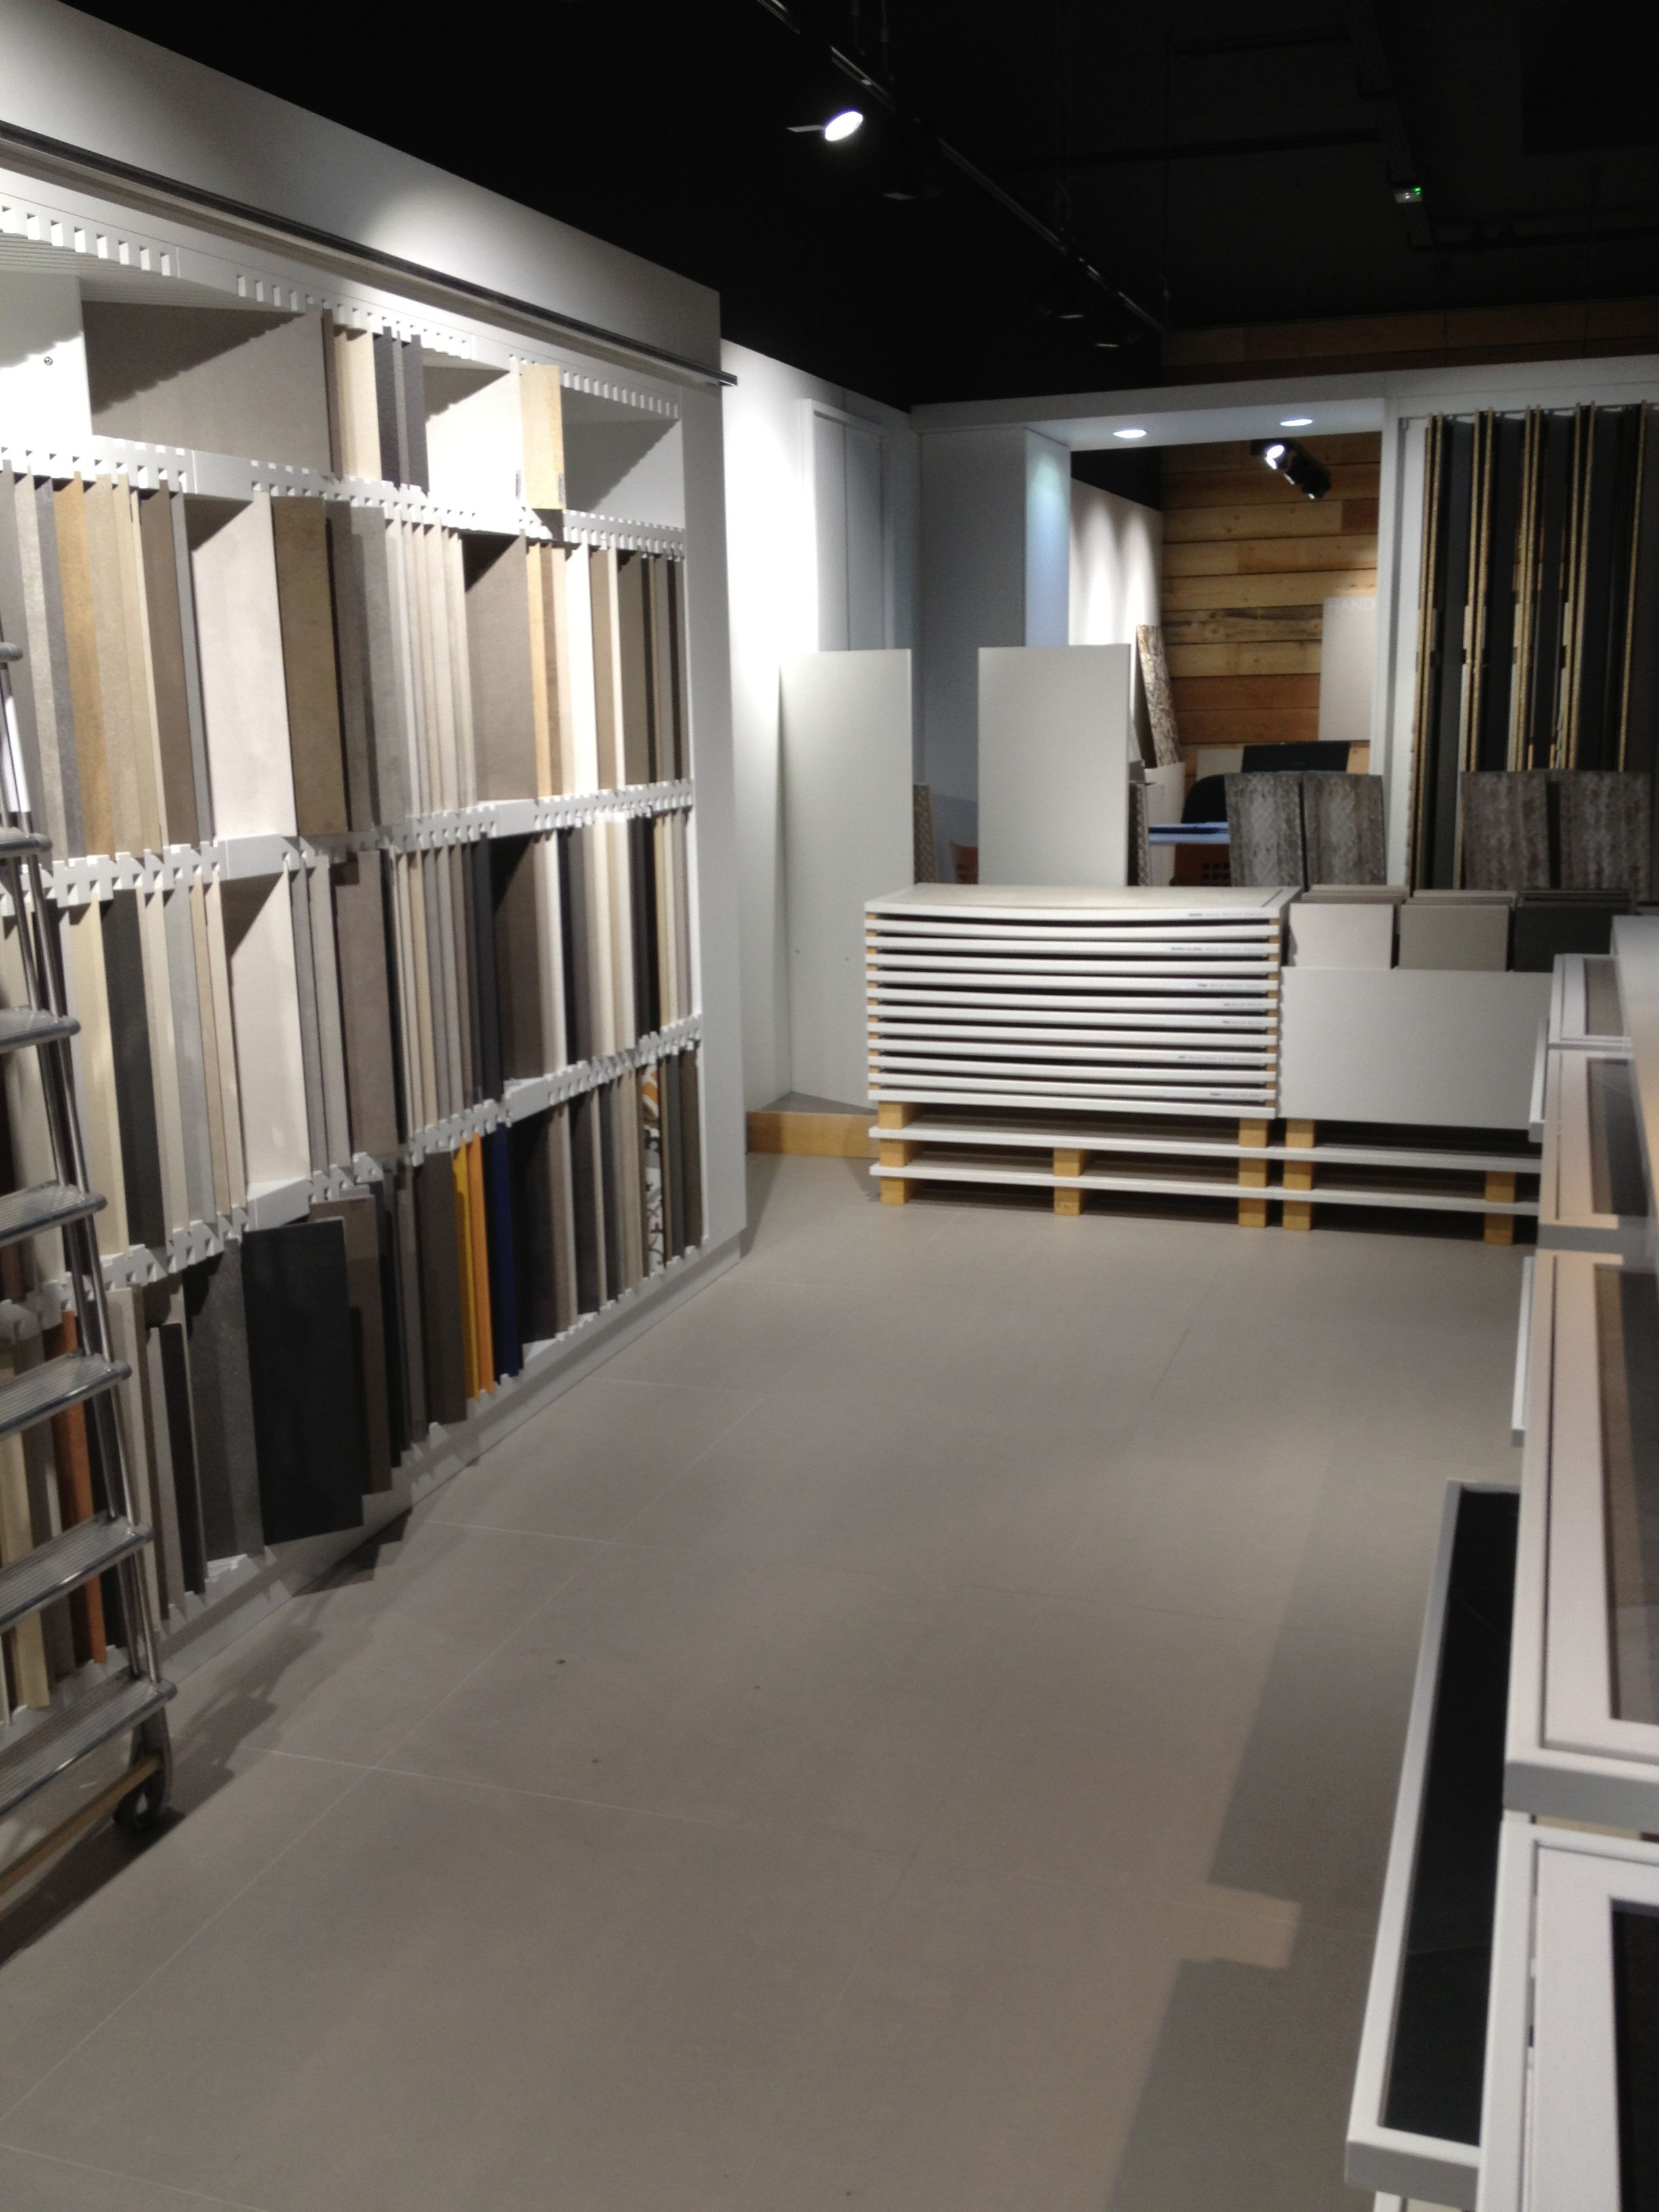 Mat riauth que tiles showroom furniture strasbourg france for Carrelage vendenheim